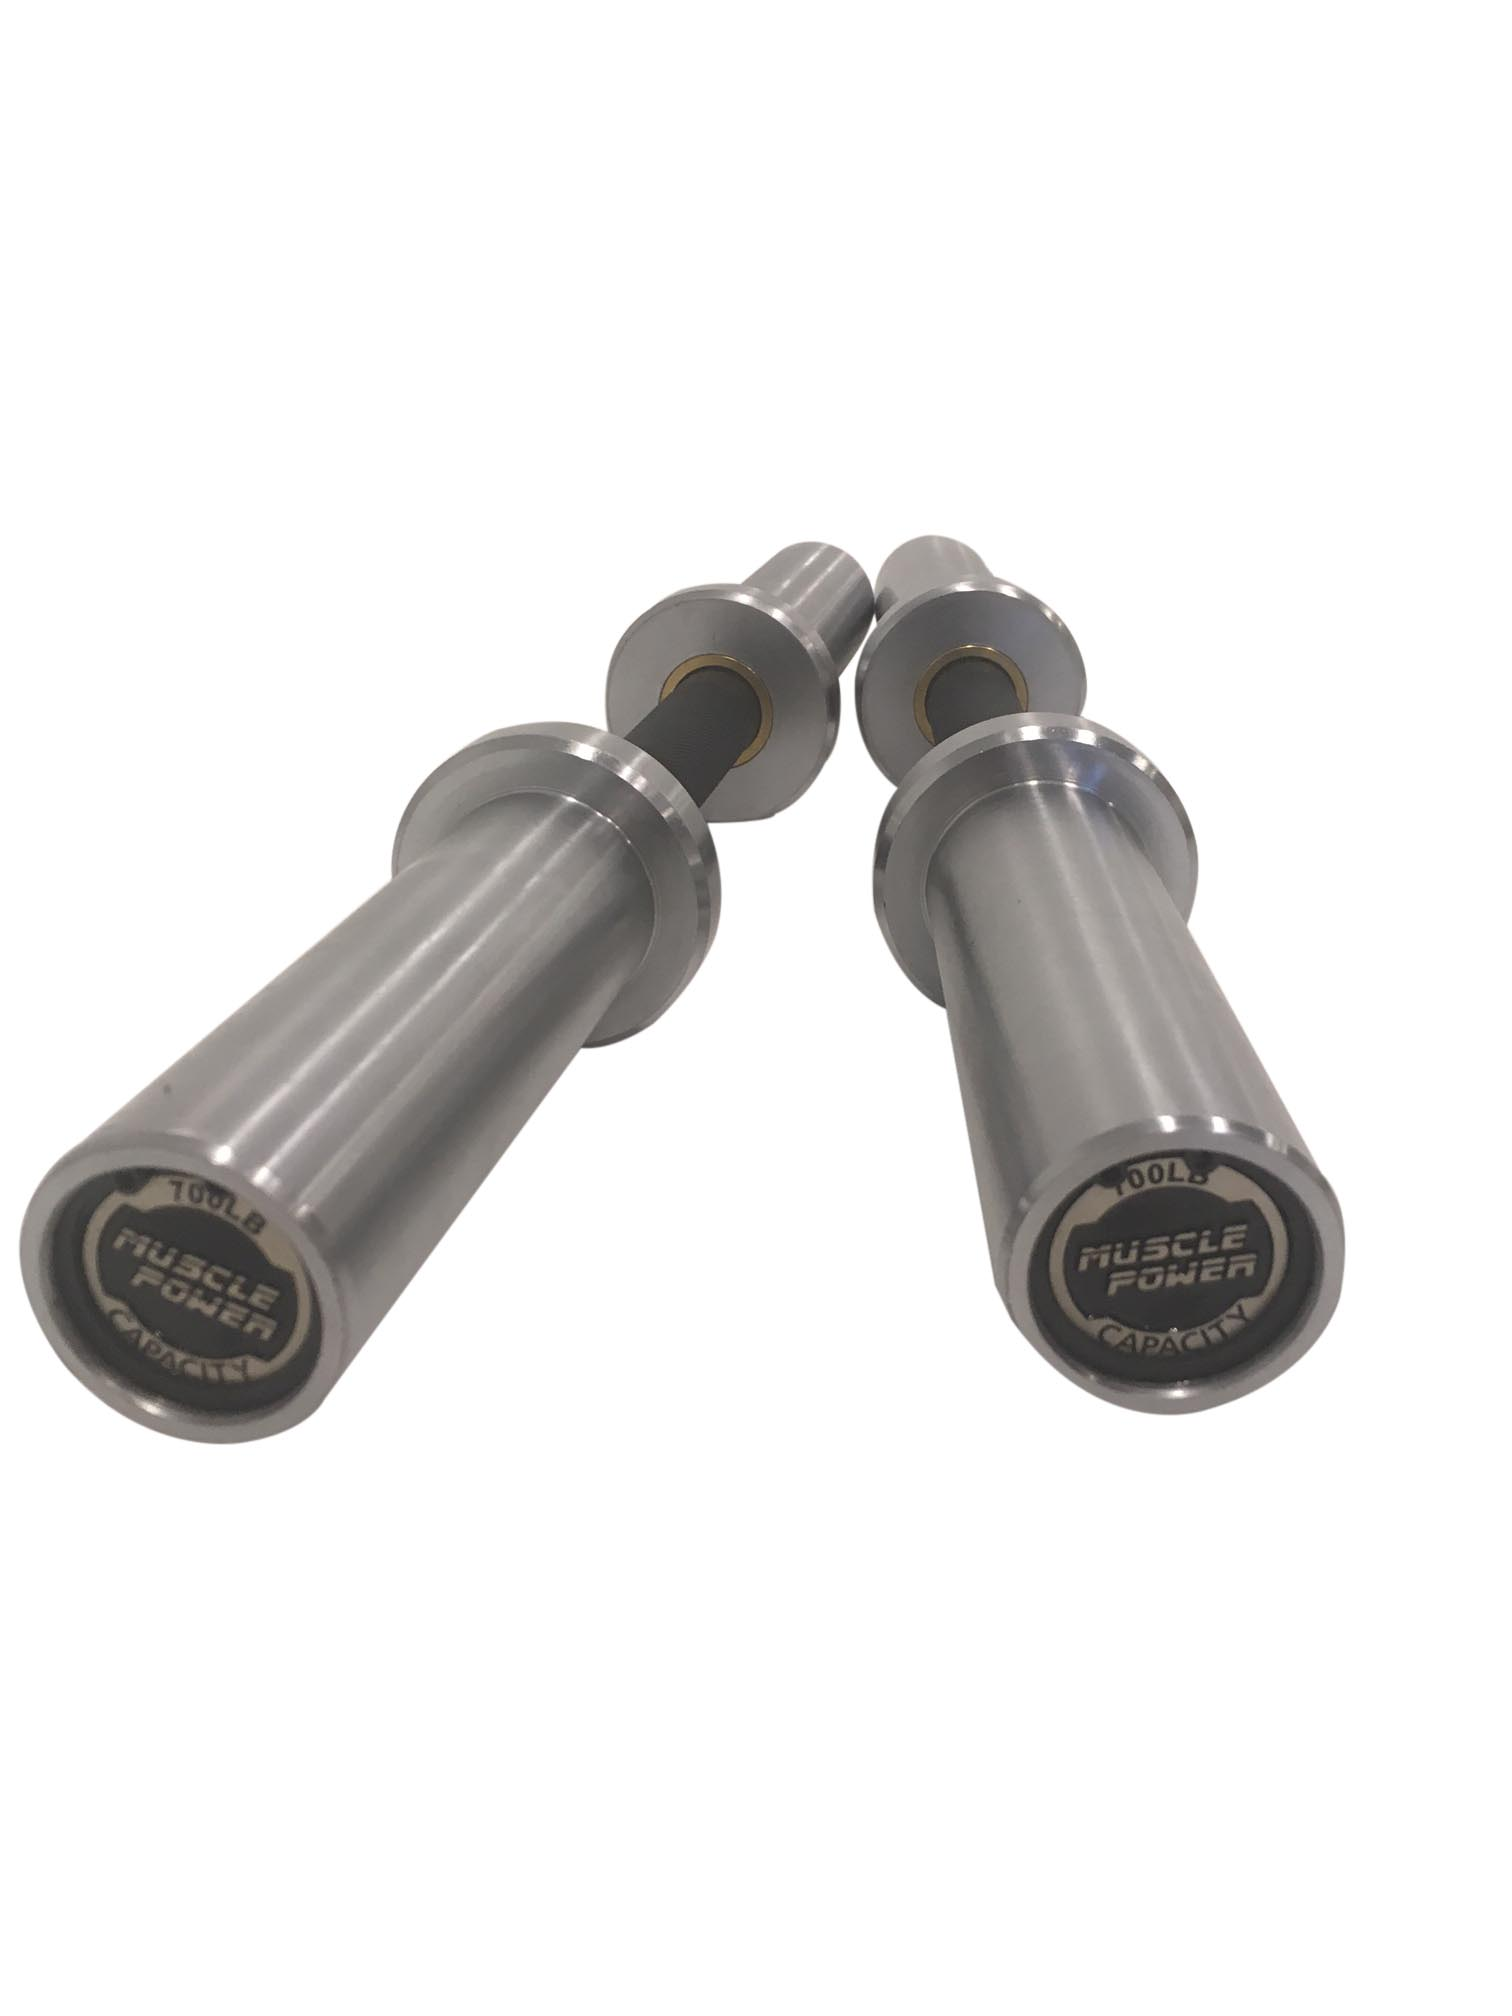 Dumbbell bar set